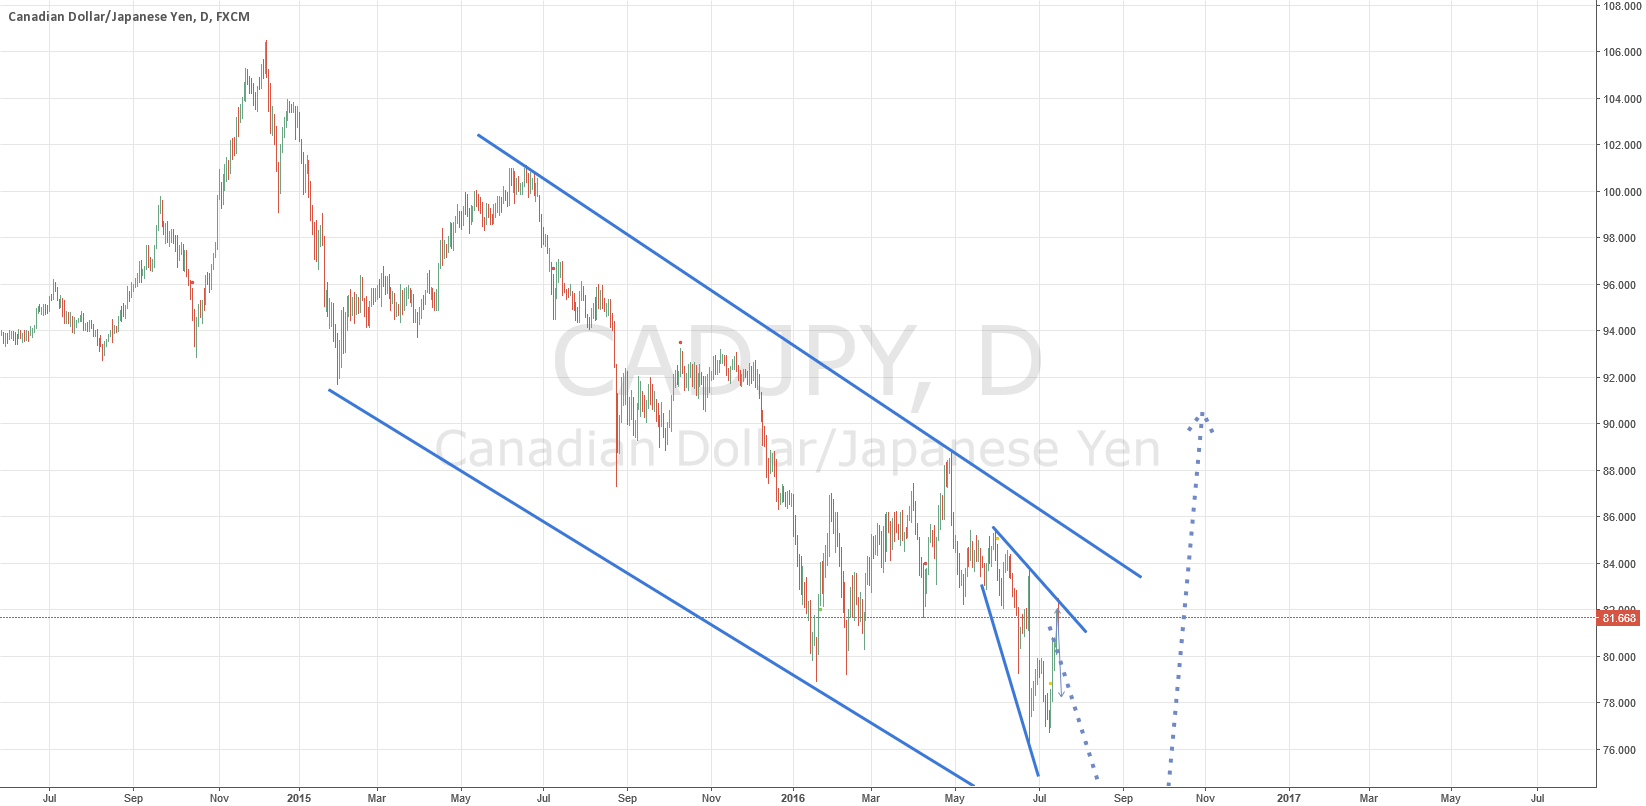 CADJPY GOING BACK NEXT WEEK